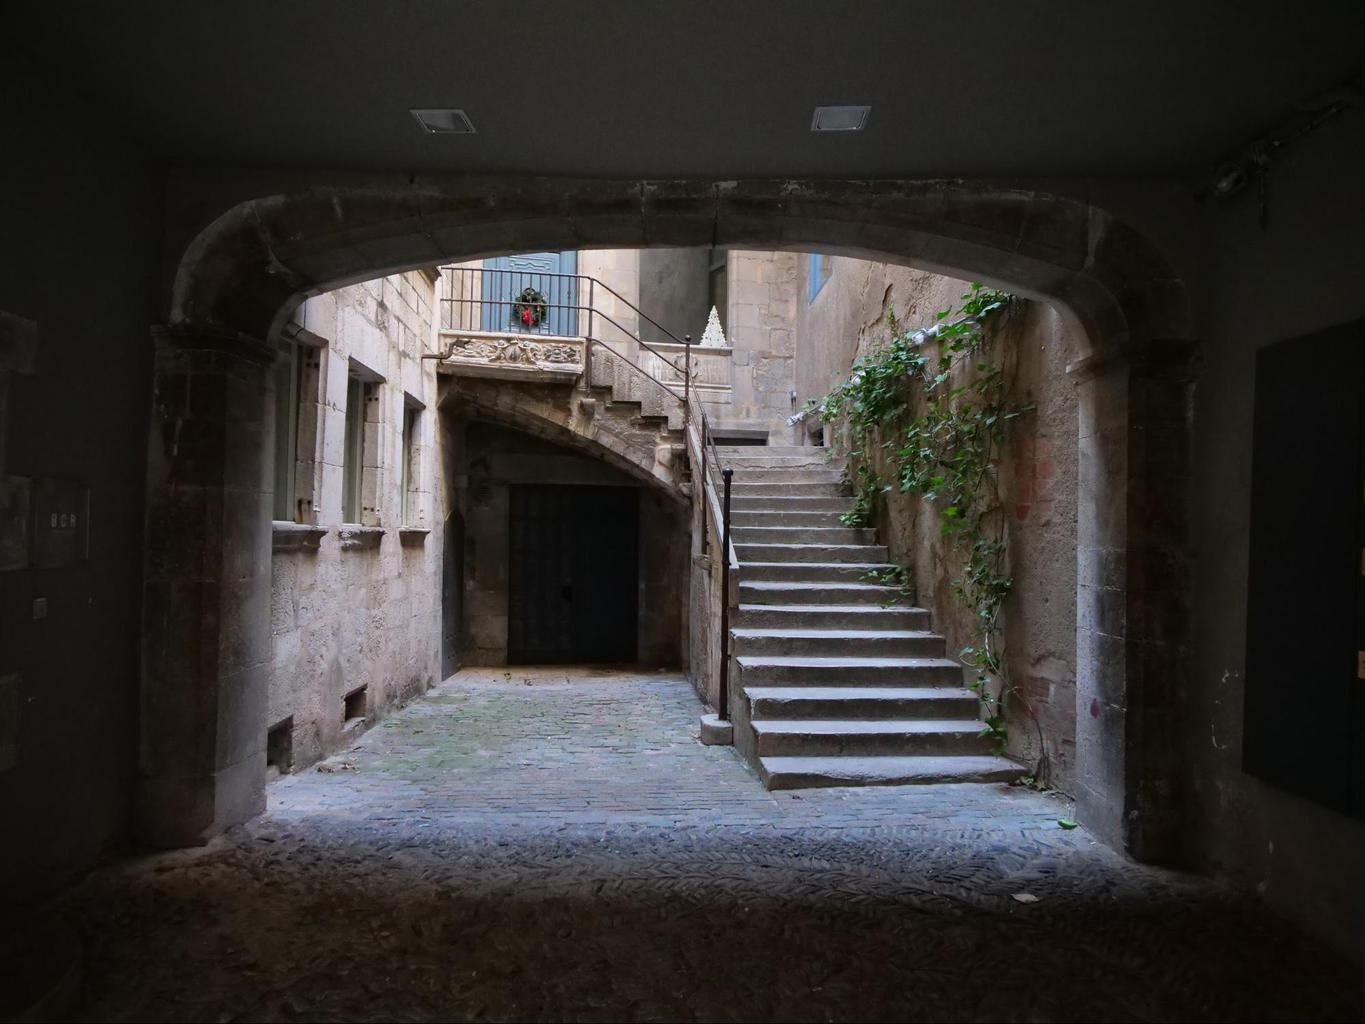 Inside one of the houses in the Jewish Quarter of Girona